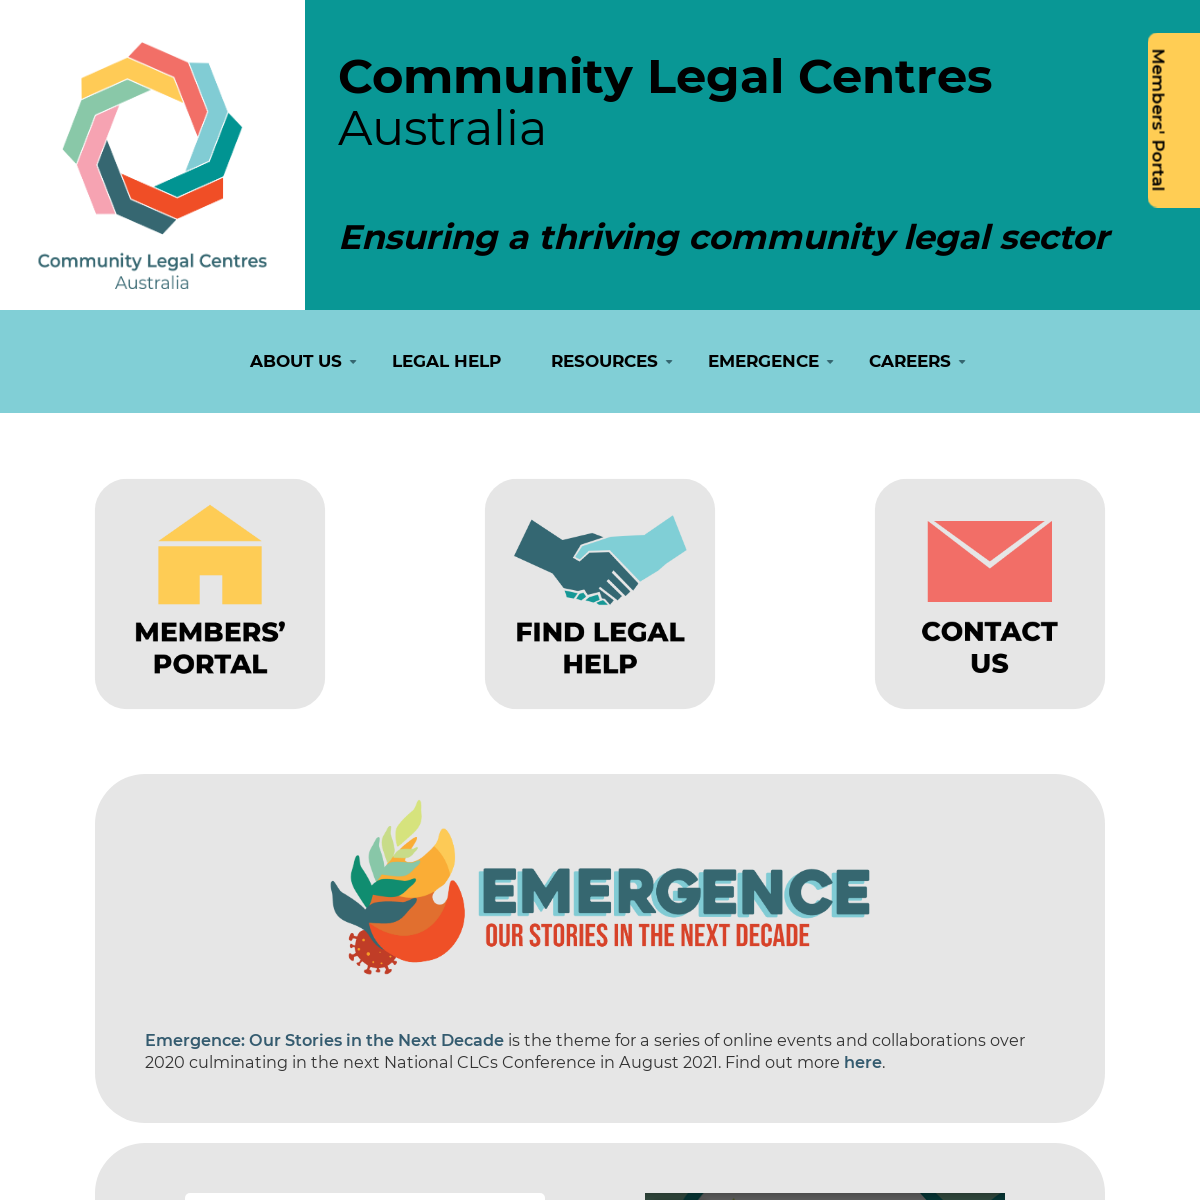 Welcome to Community Legal Centres Australia - Community Legal Centres Australia